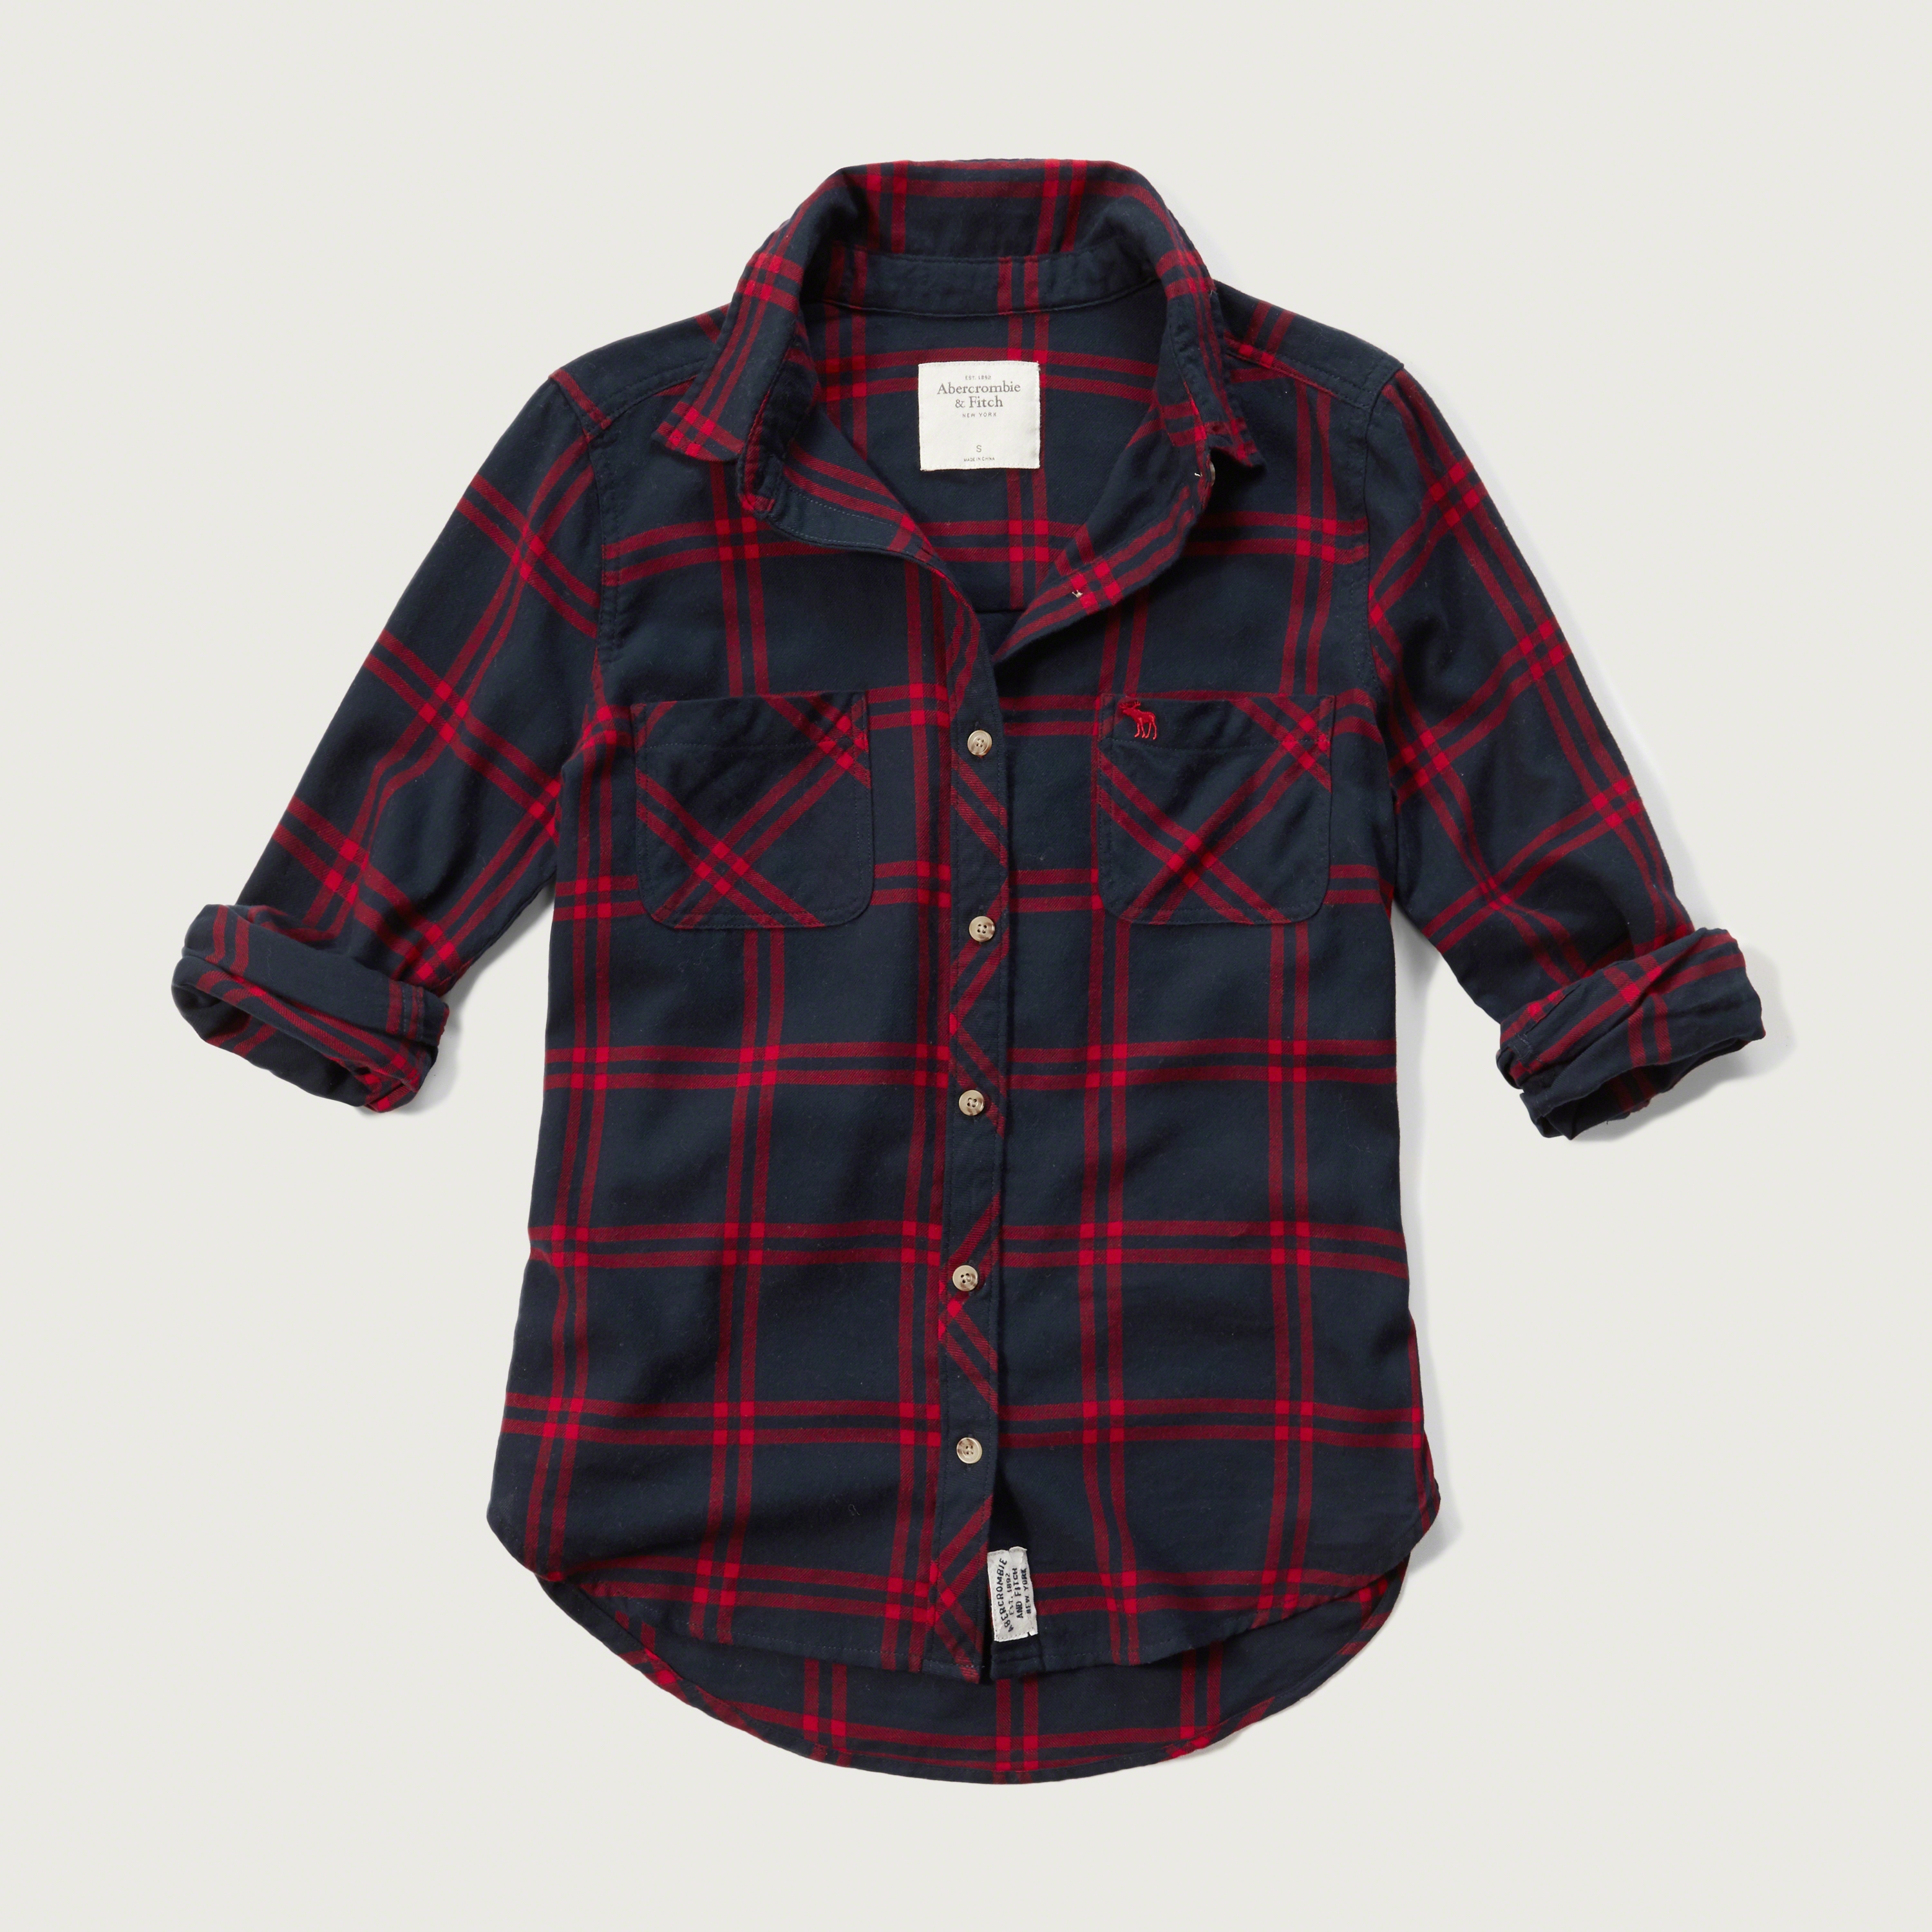 Lyst abercrombie fitch plaid flannel shirt in blue for Navy blue and red flannel shirt